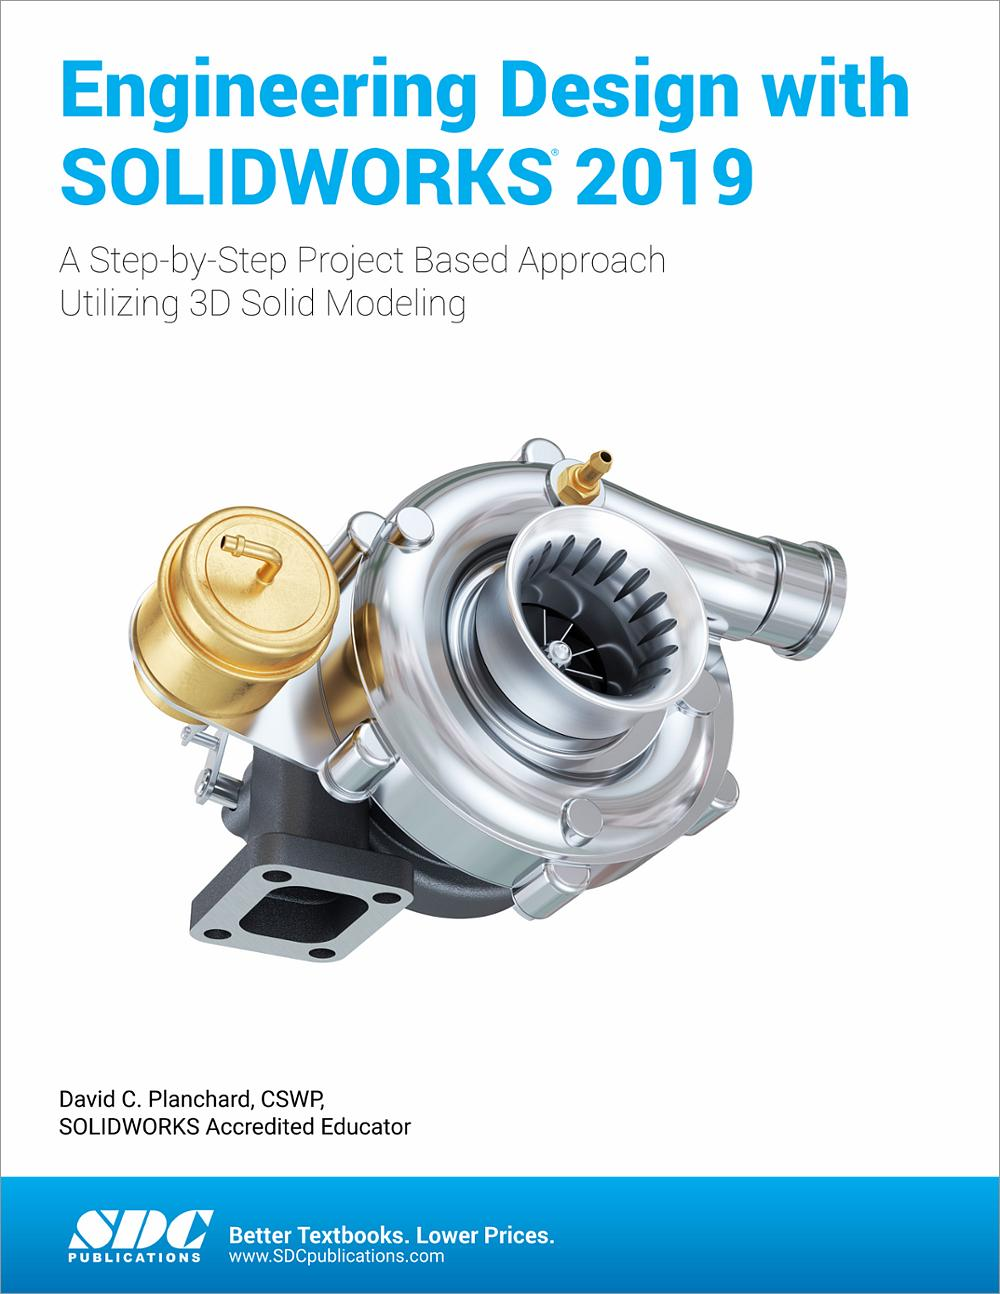 Solidworks 2019 Book